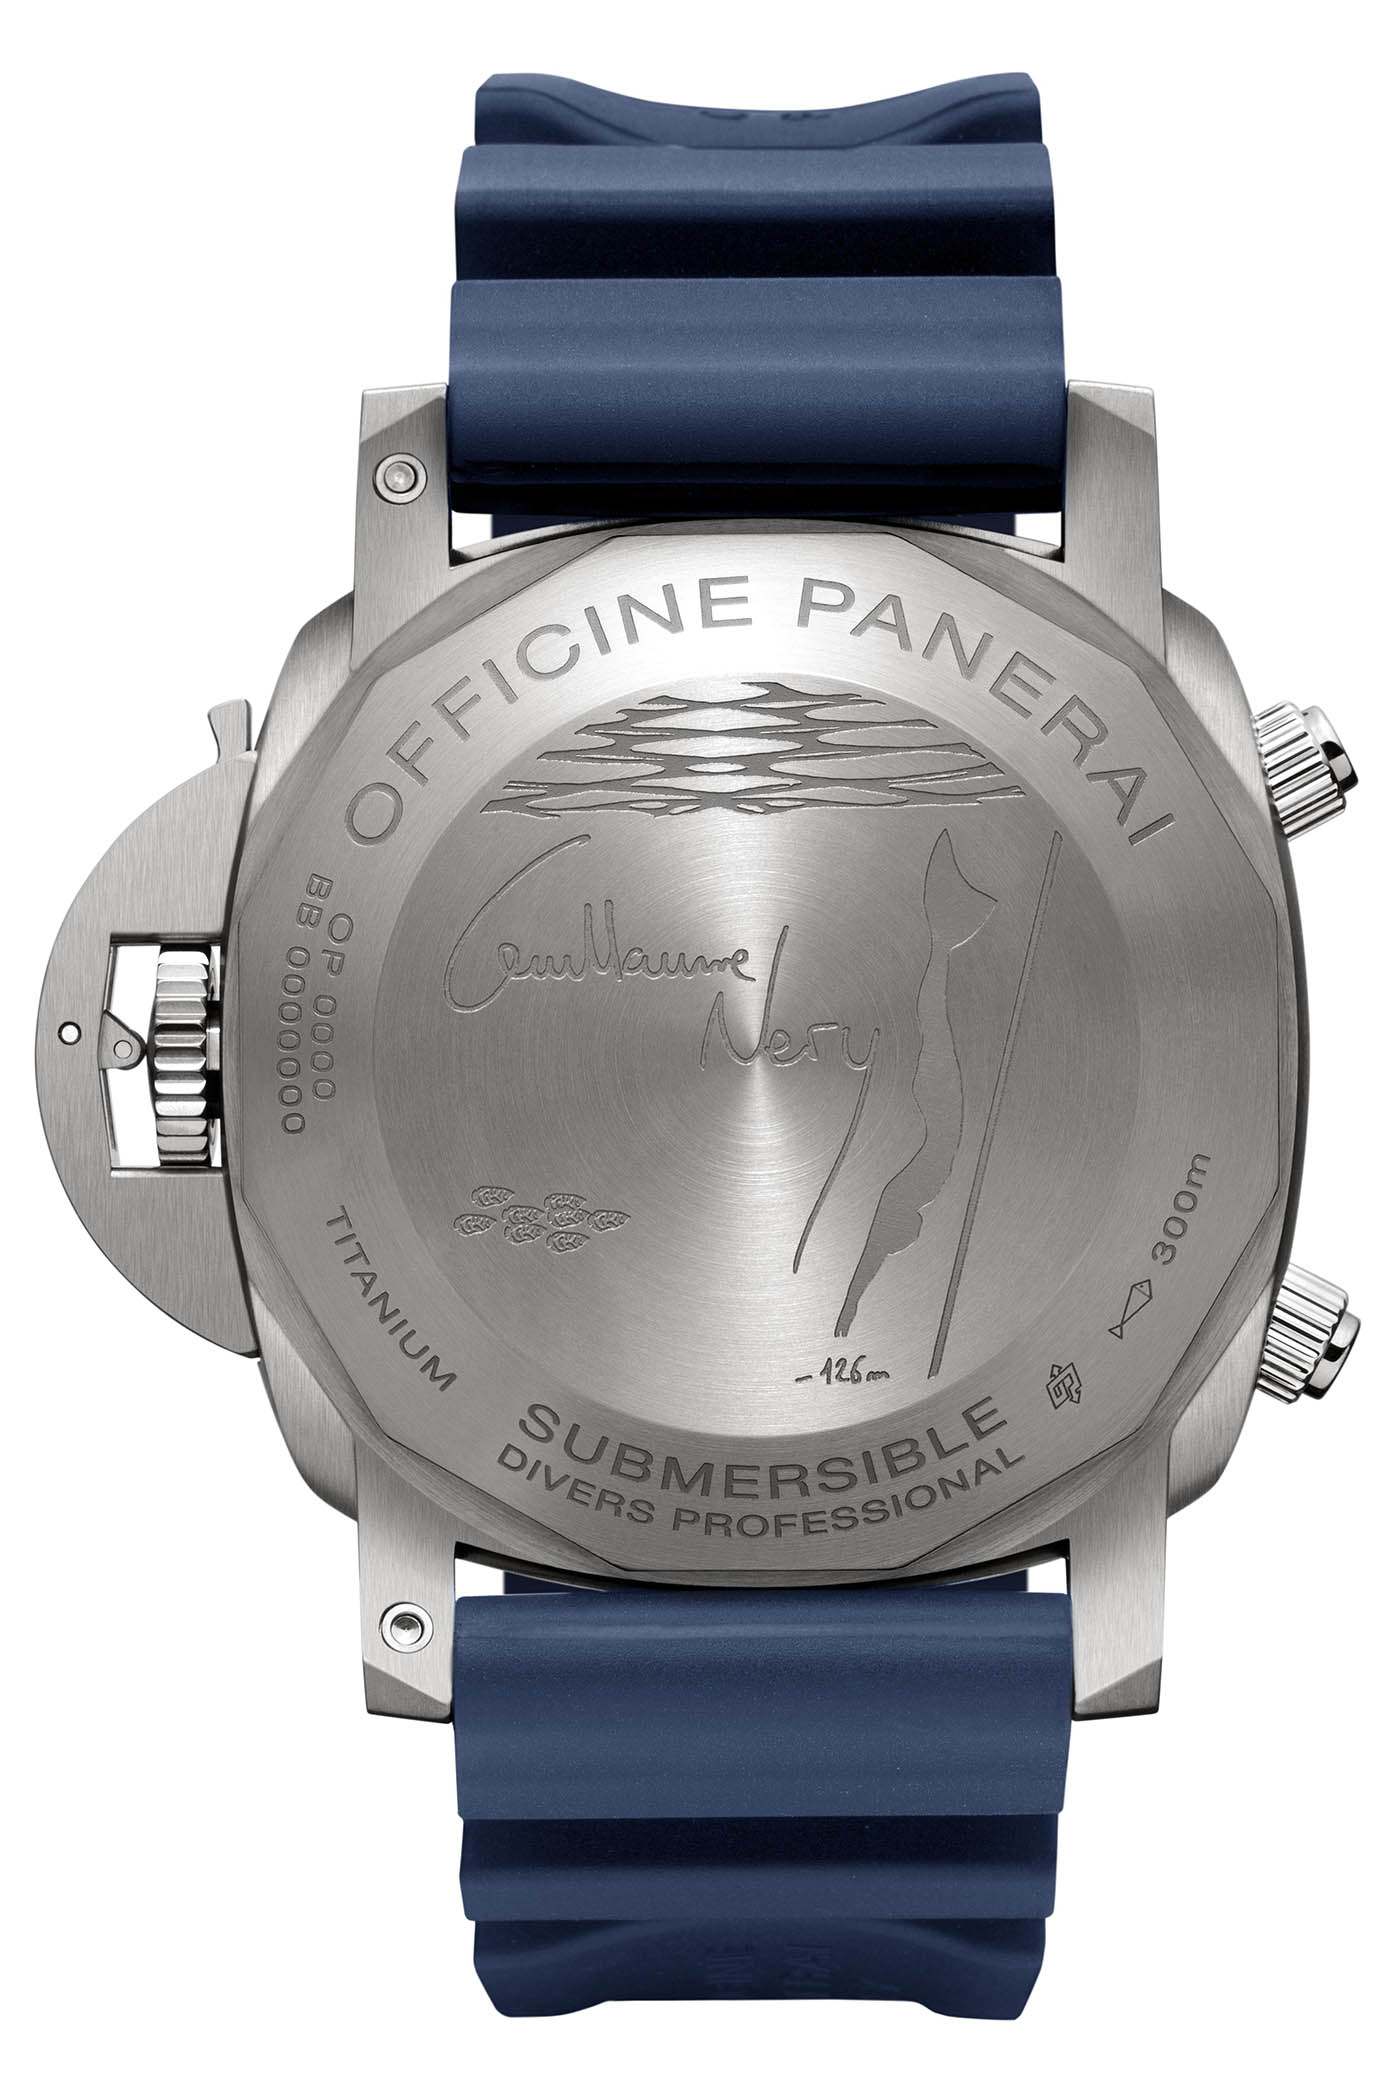 Panerai Submersible Chrono Guillaume Nery Edition PAM00982 - Pre-SIHH 2019